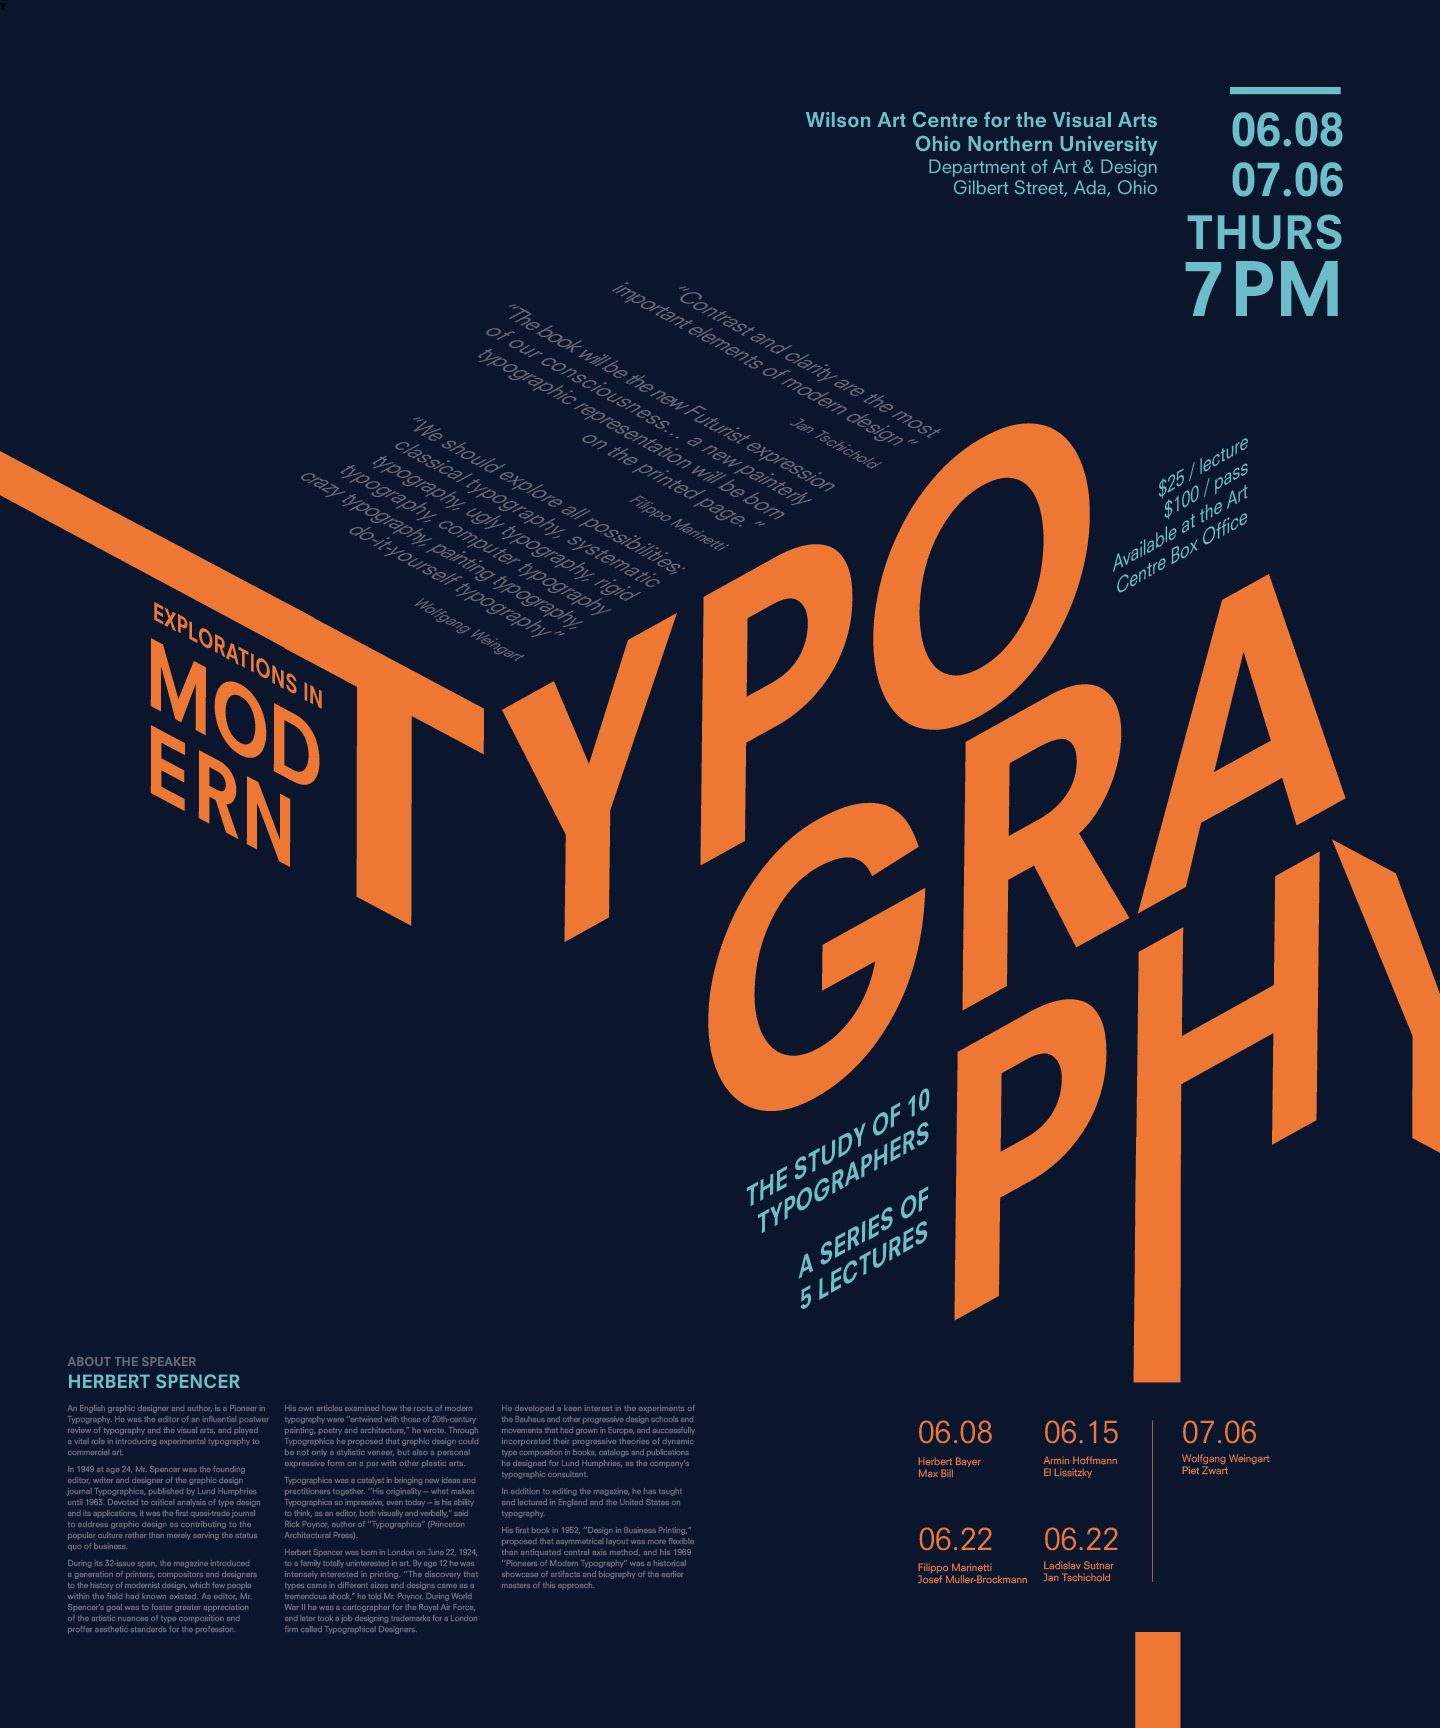 Emily chok modern explorations a broadsheet designed to push the limitations of typography bringing 3d elements in a 2d space solutioingenieria Choice Image